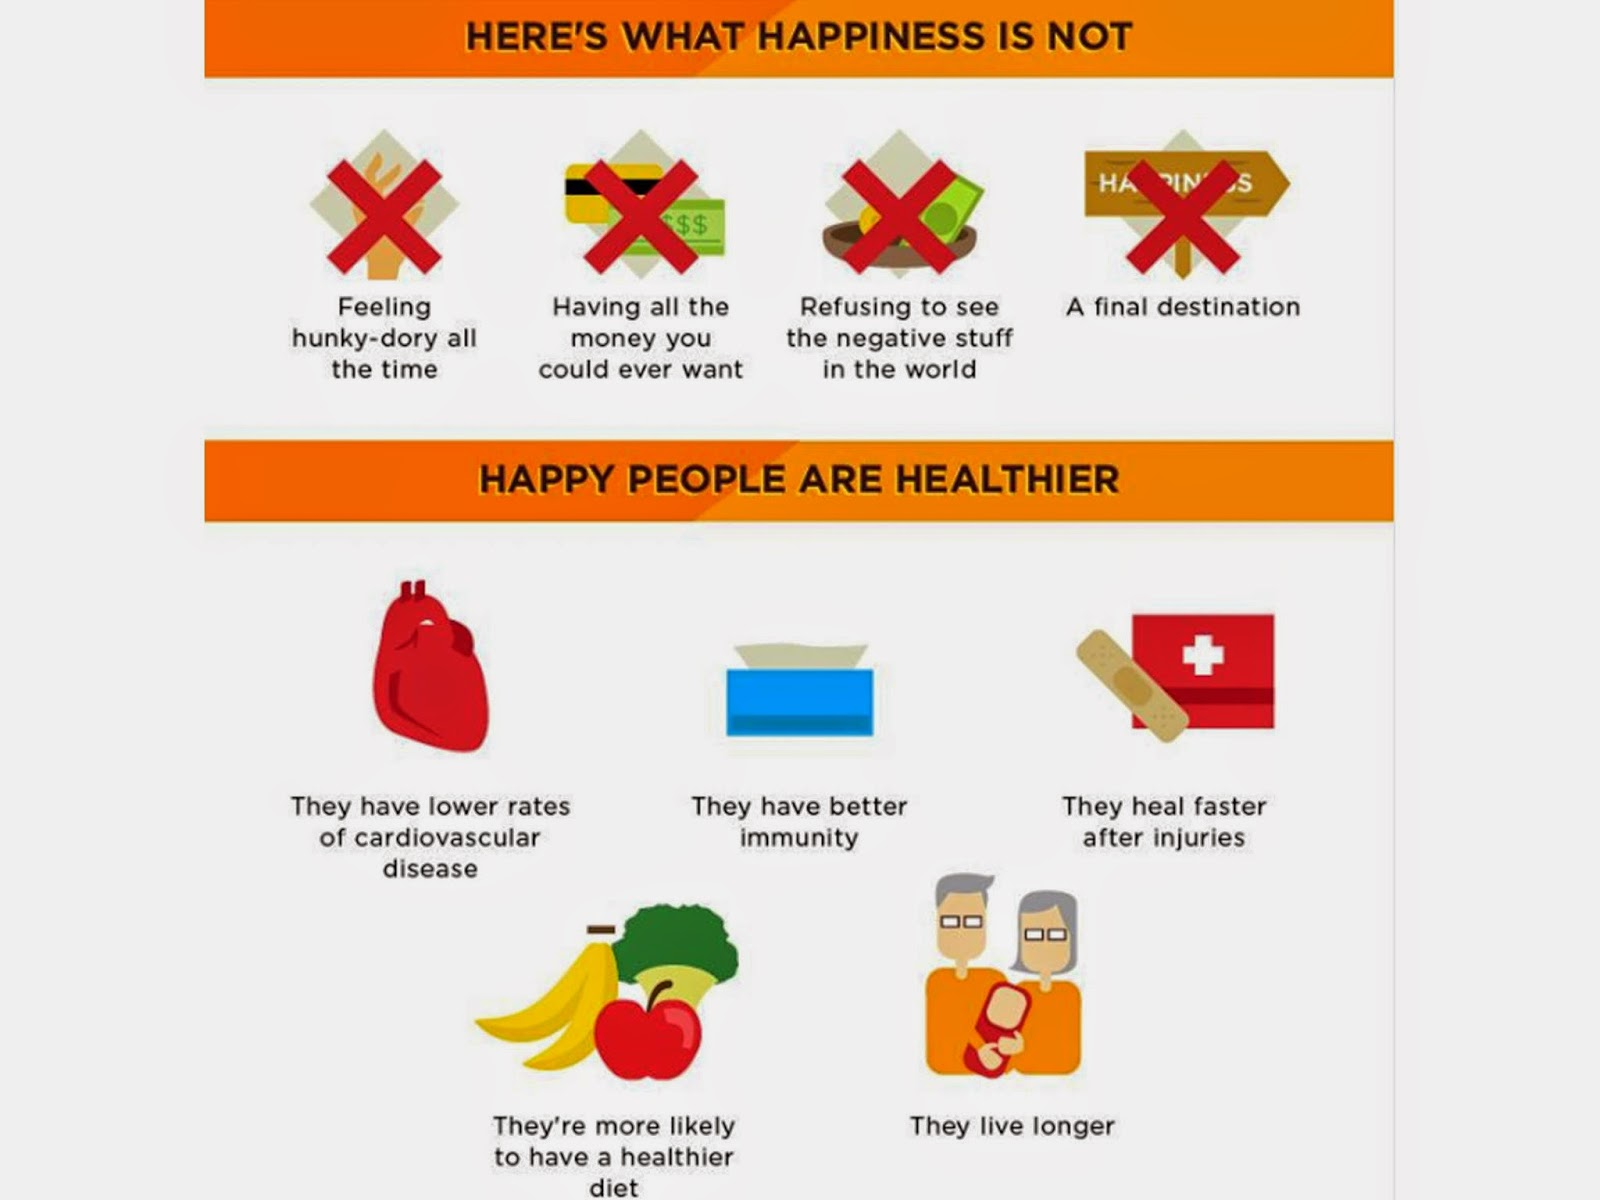 Facts about happiness 3